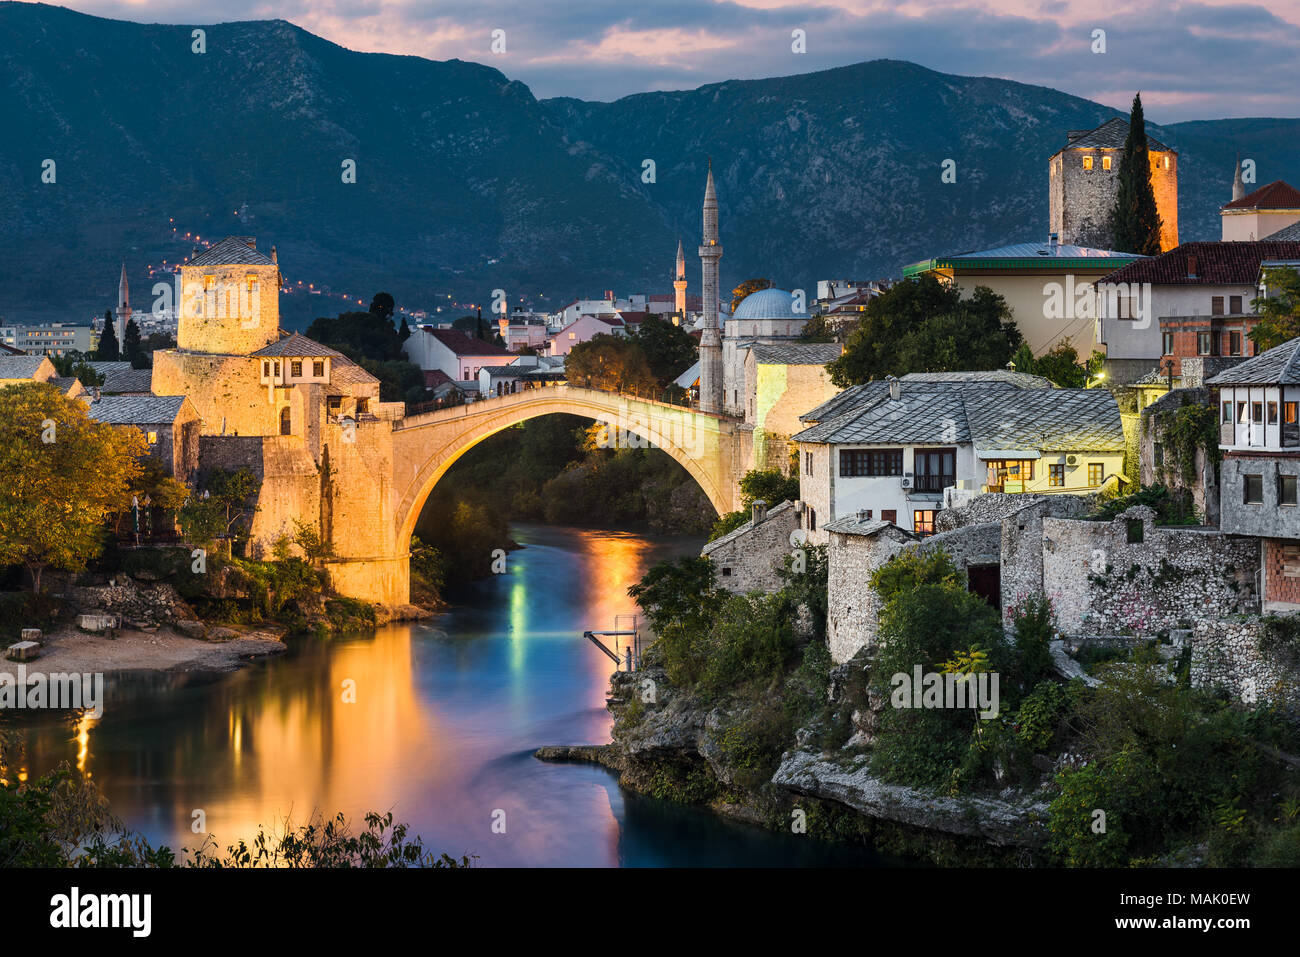 Old Bridge at night in Mostar, Bosnia and Herzegovina - Stock Image